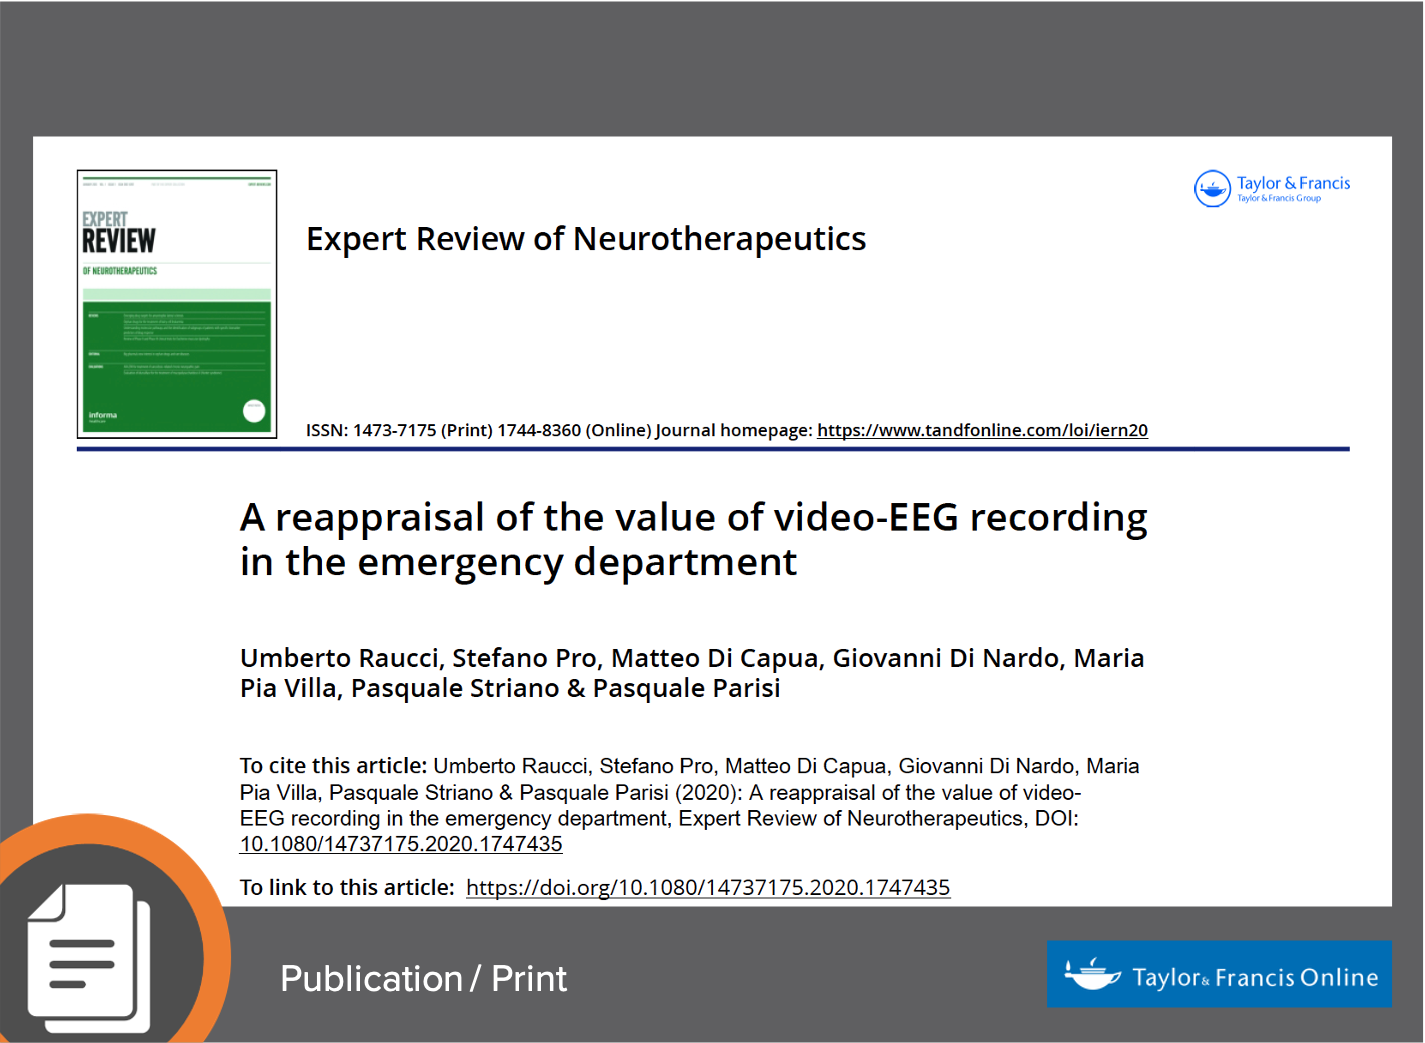 Raucci, U. et al. (2020) A Reappraisal of the Value of Video-EEG Recording in the Emergency Department. Expert Review of Neurotherapeutics 20(5):459-475. https://doi.org/10.1080/14737175.2020.1747435